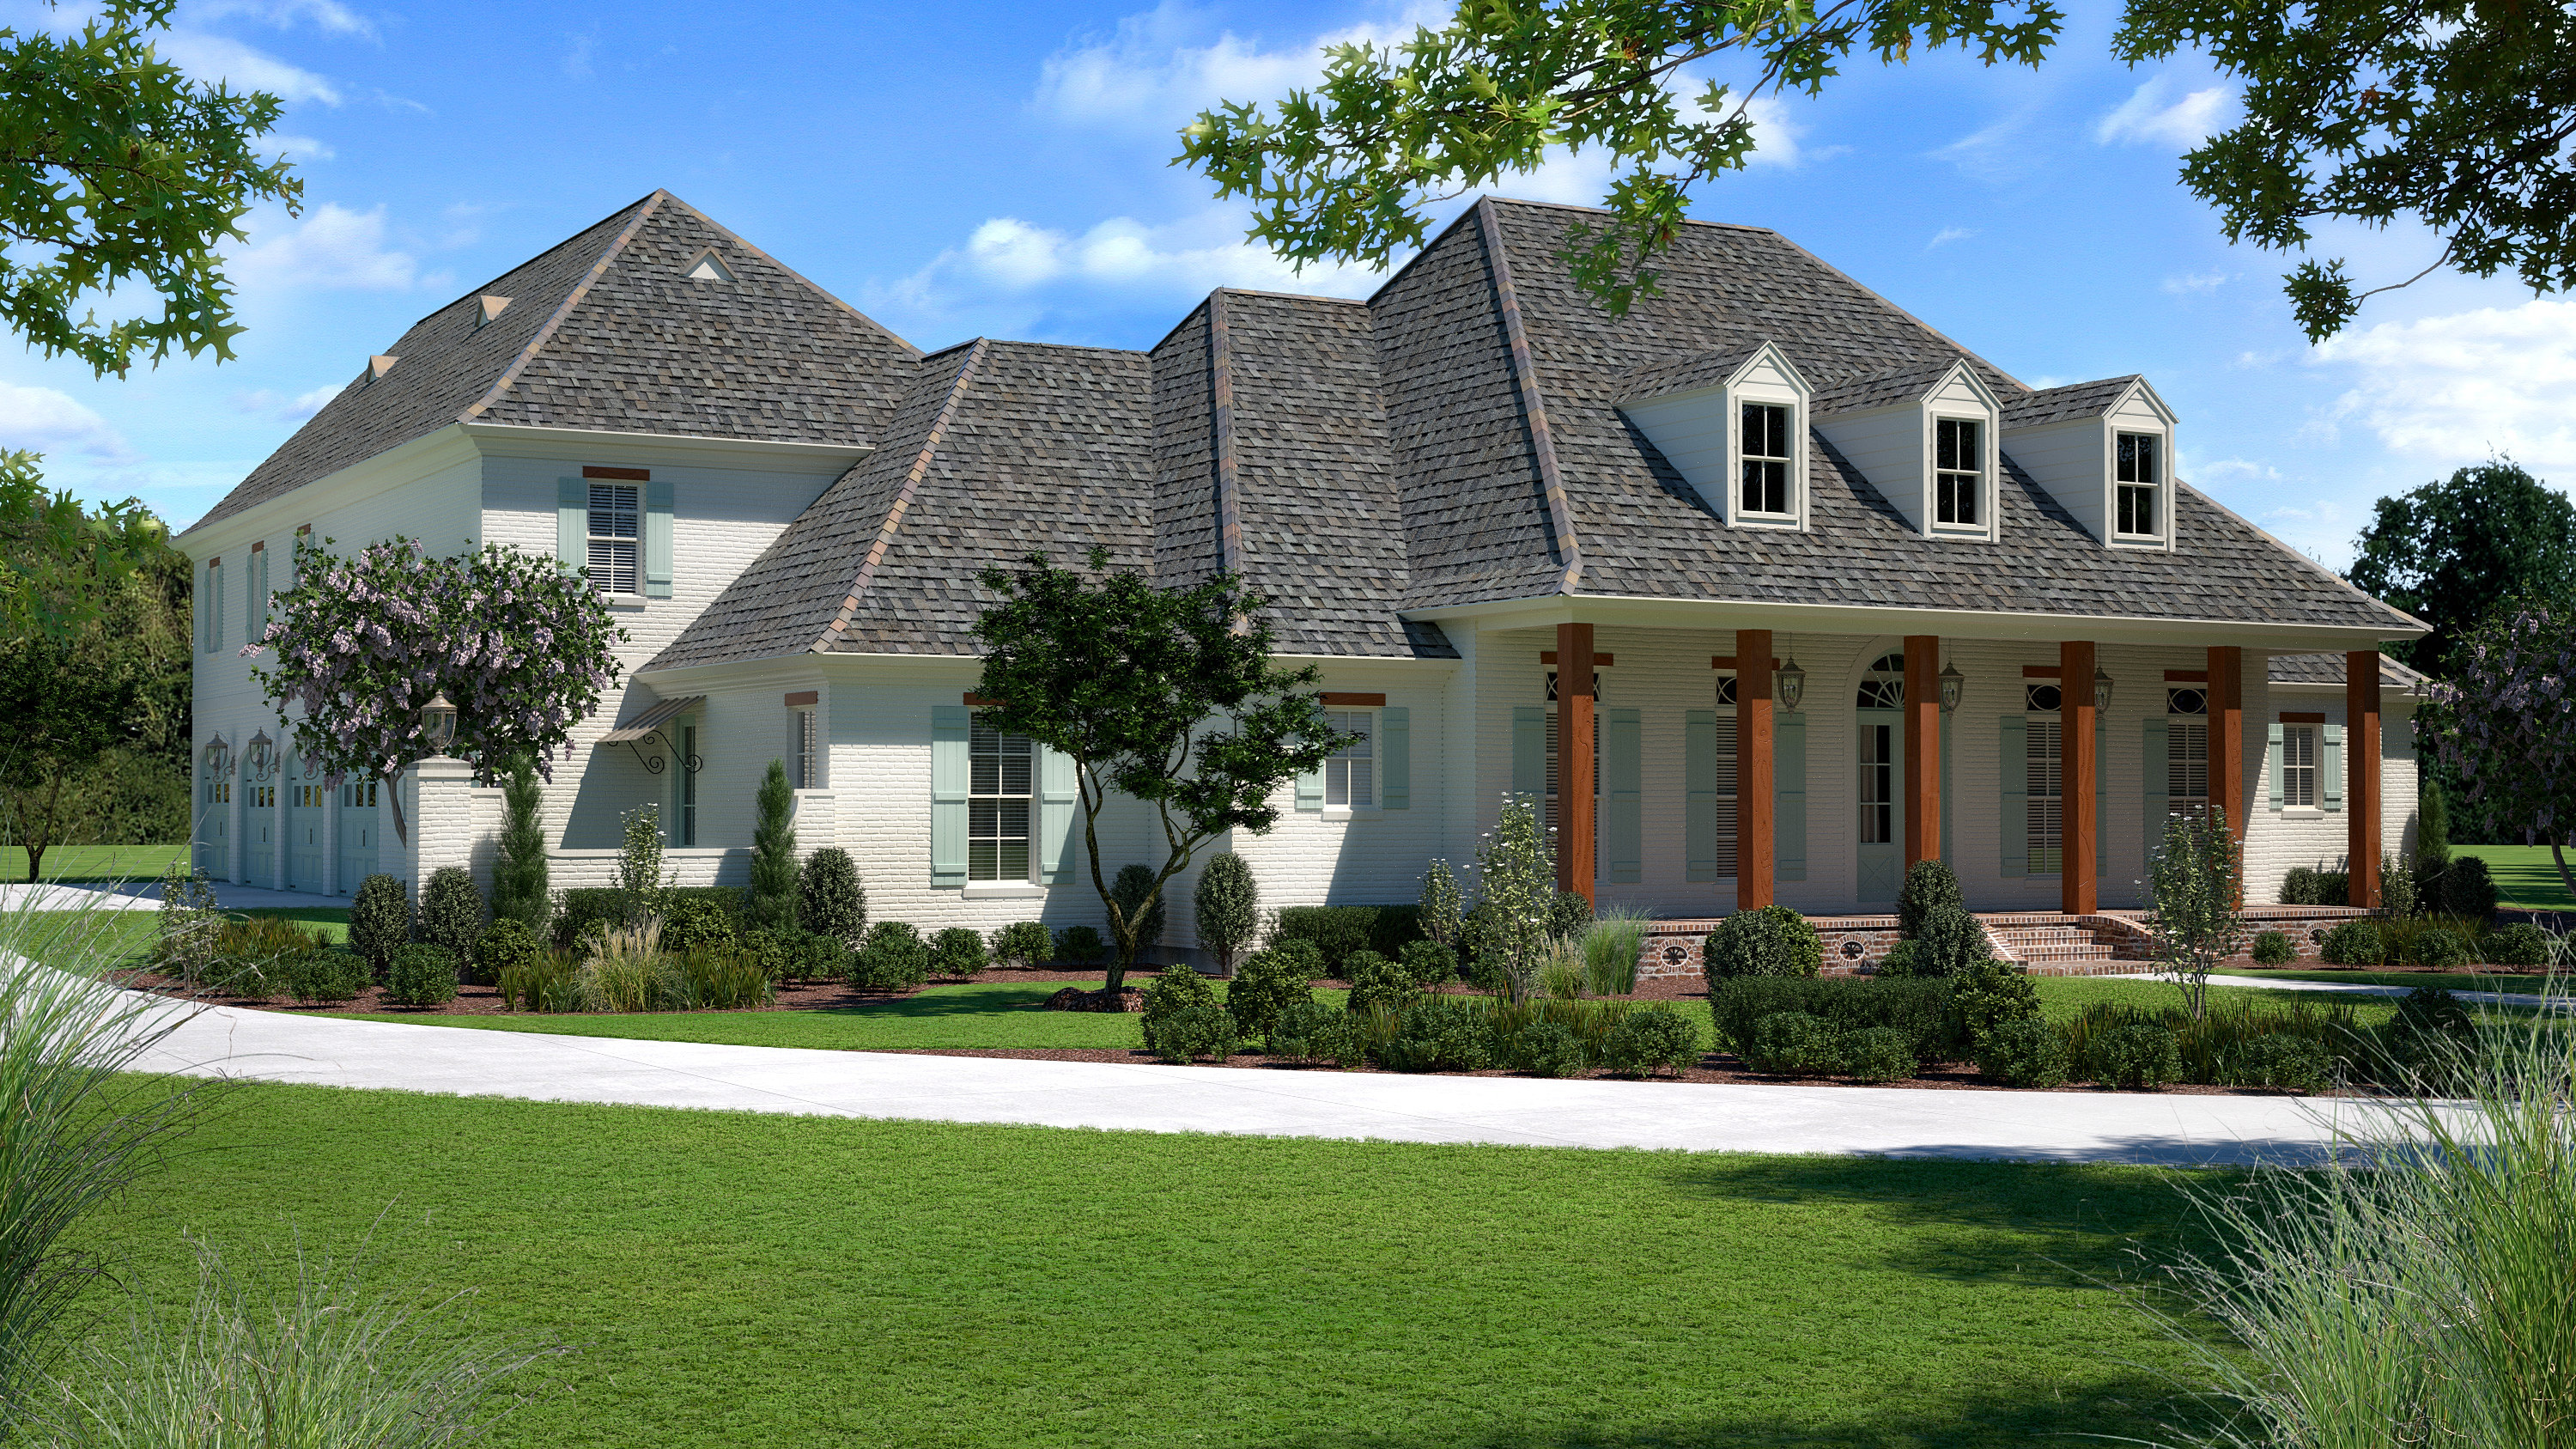 Acadiana Home Design Home Design Ideas Madden Home Design French